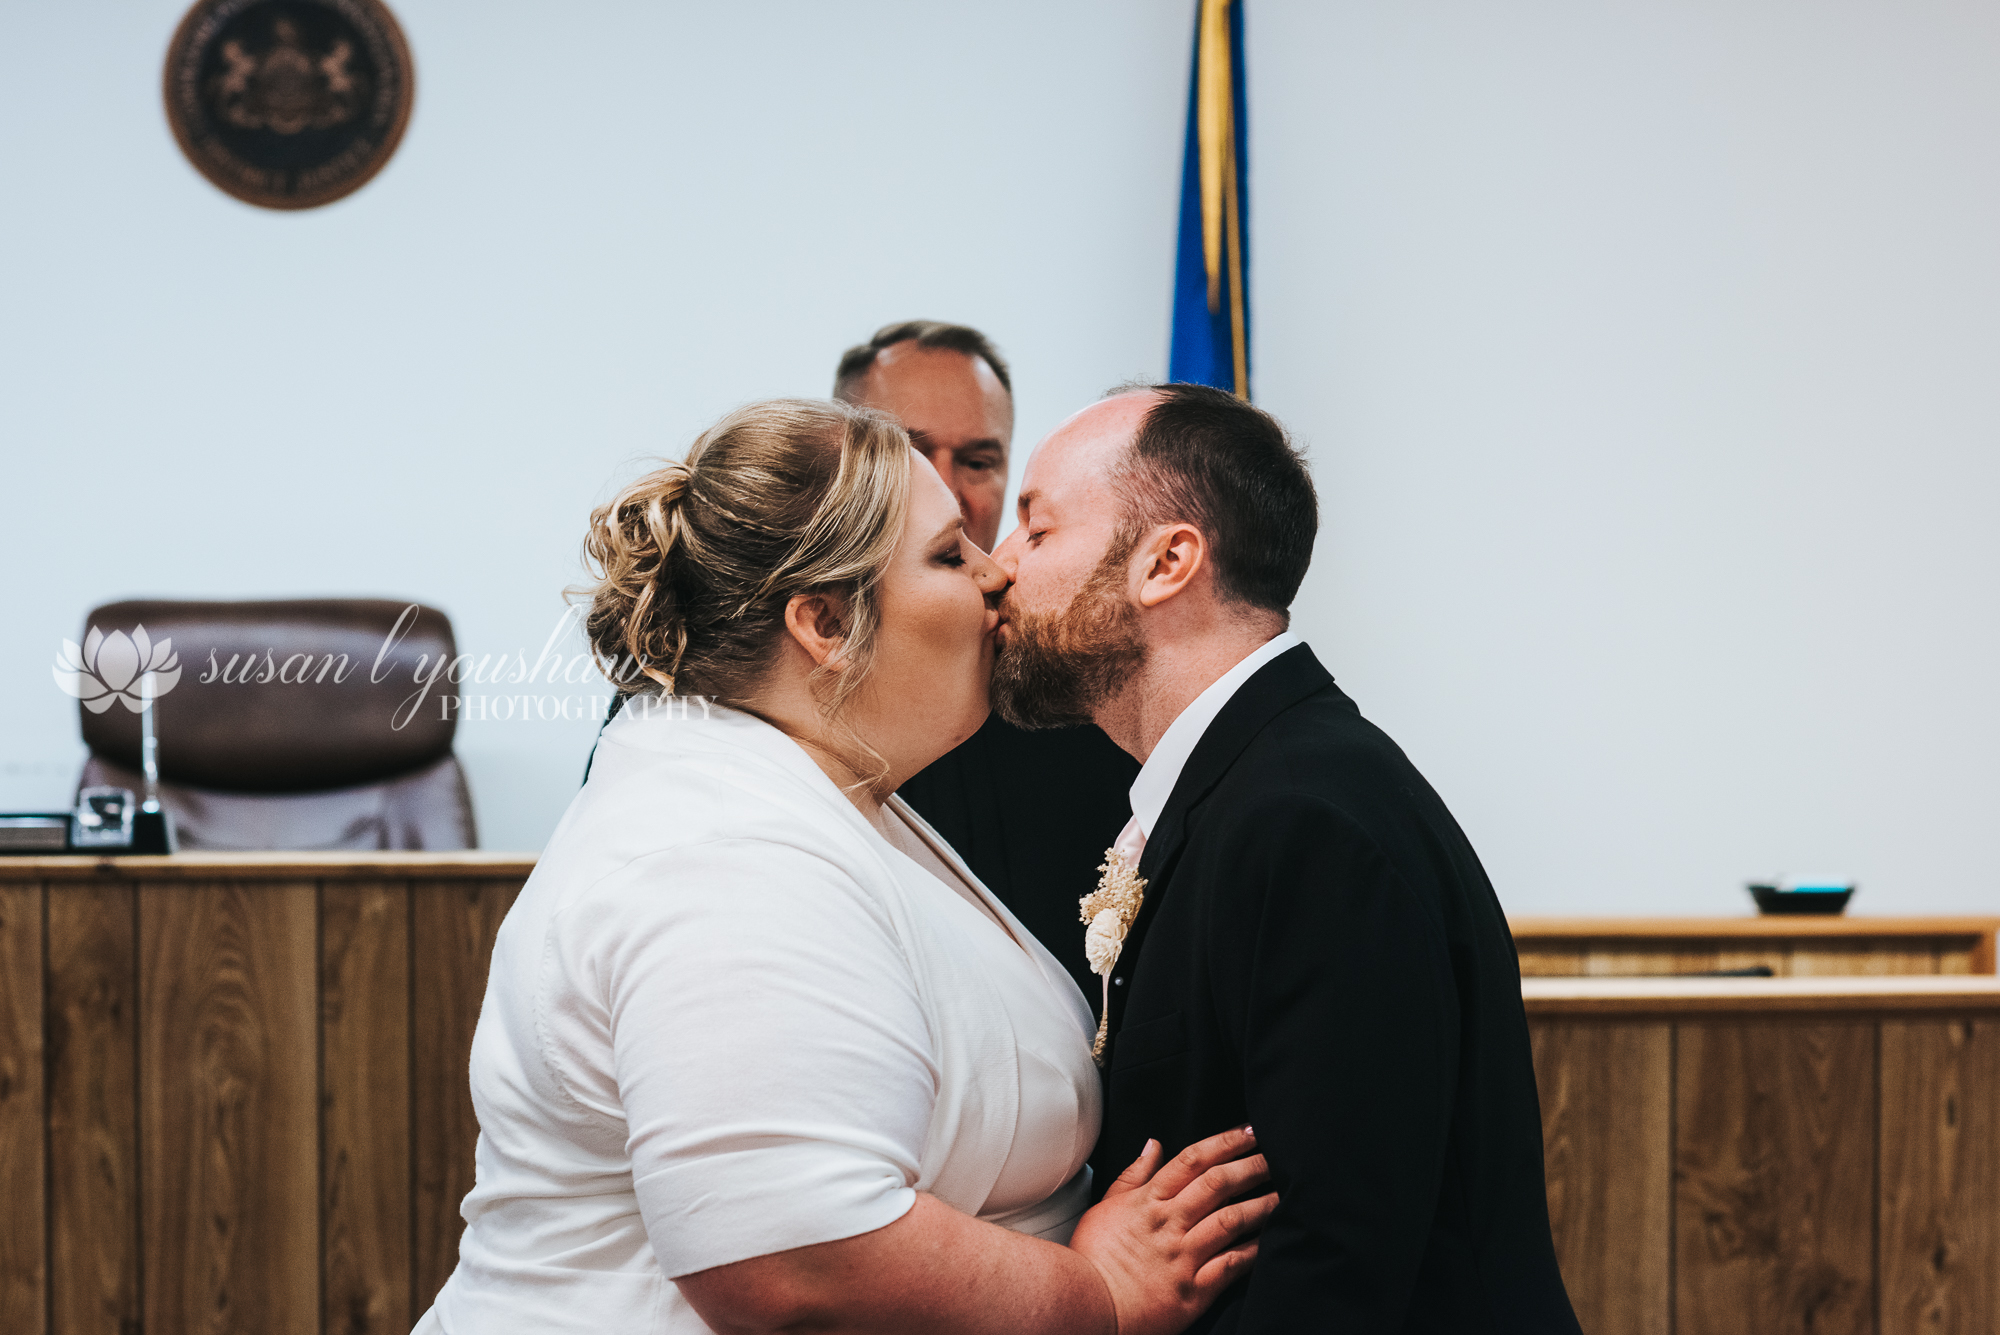 Bill and Sarah Wedding Photos 06-08-2019 SLY Photography -33.jpg